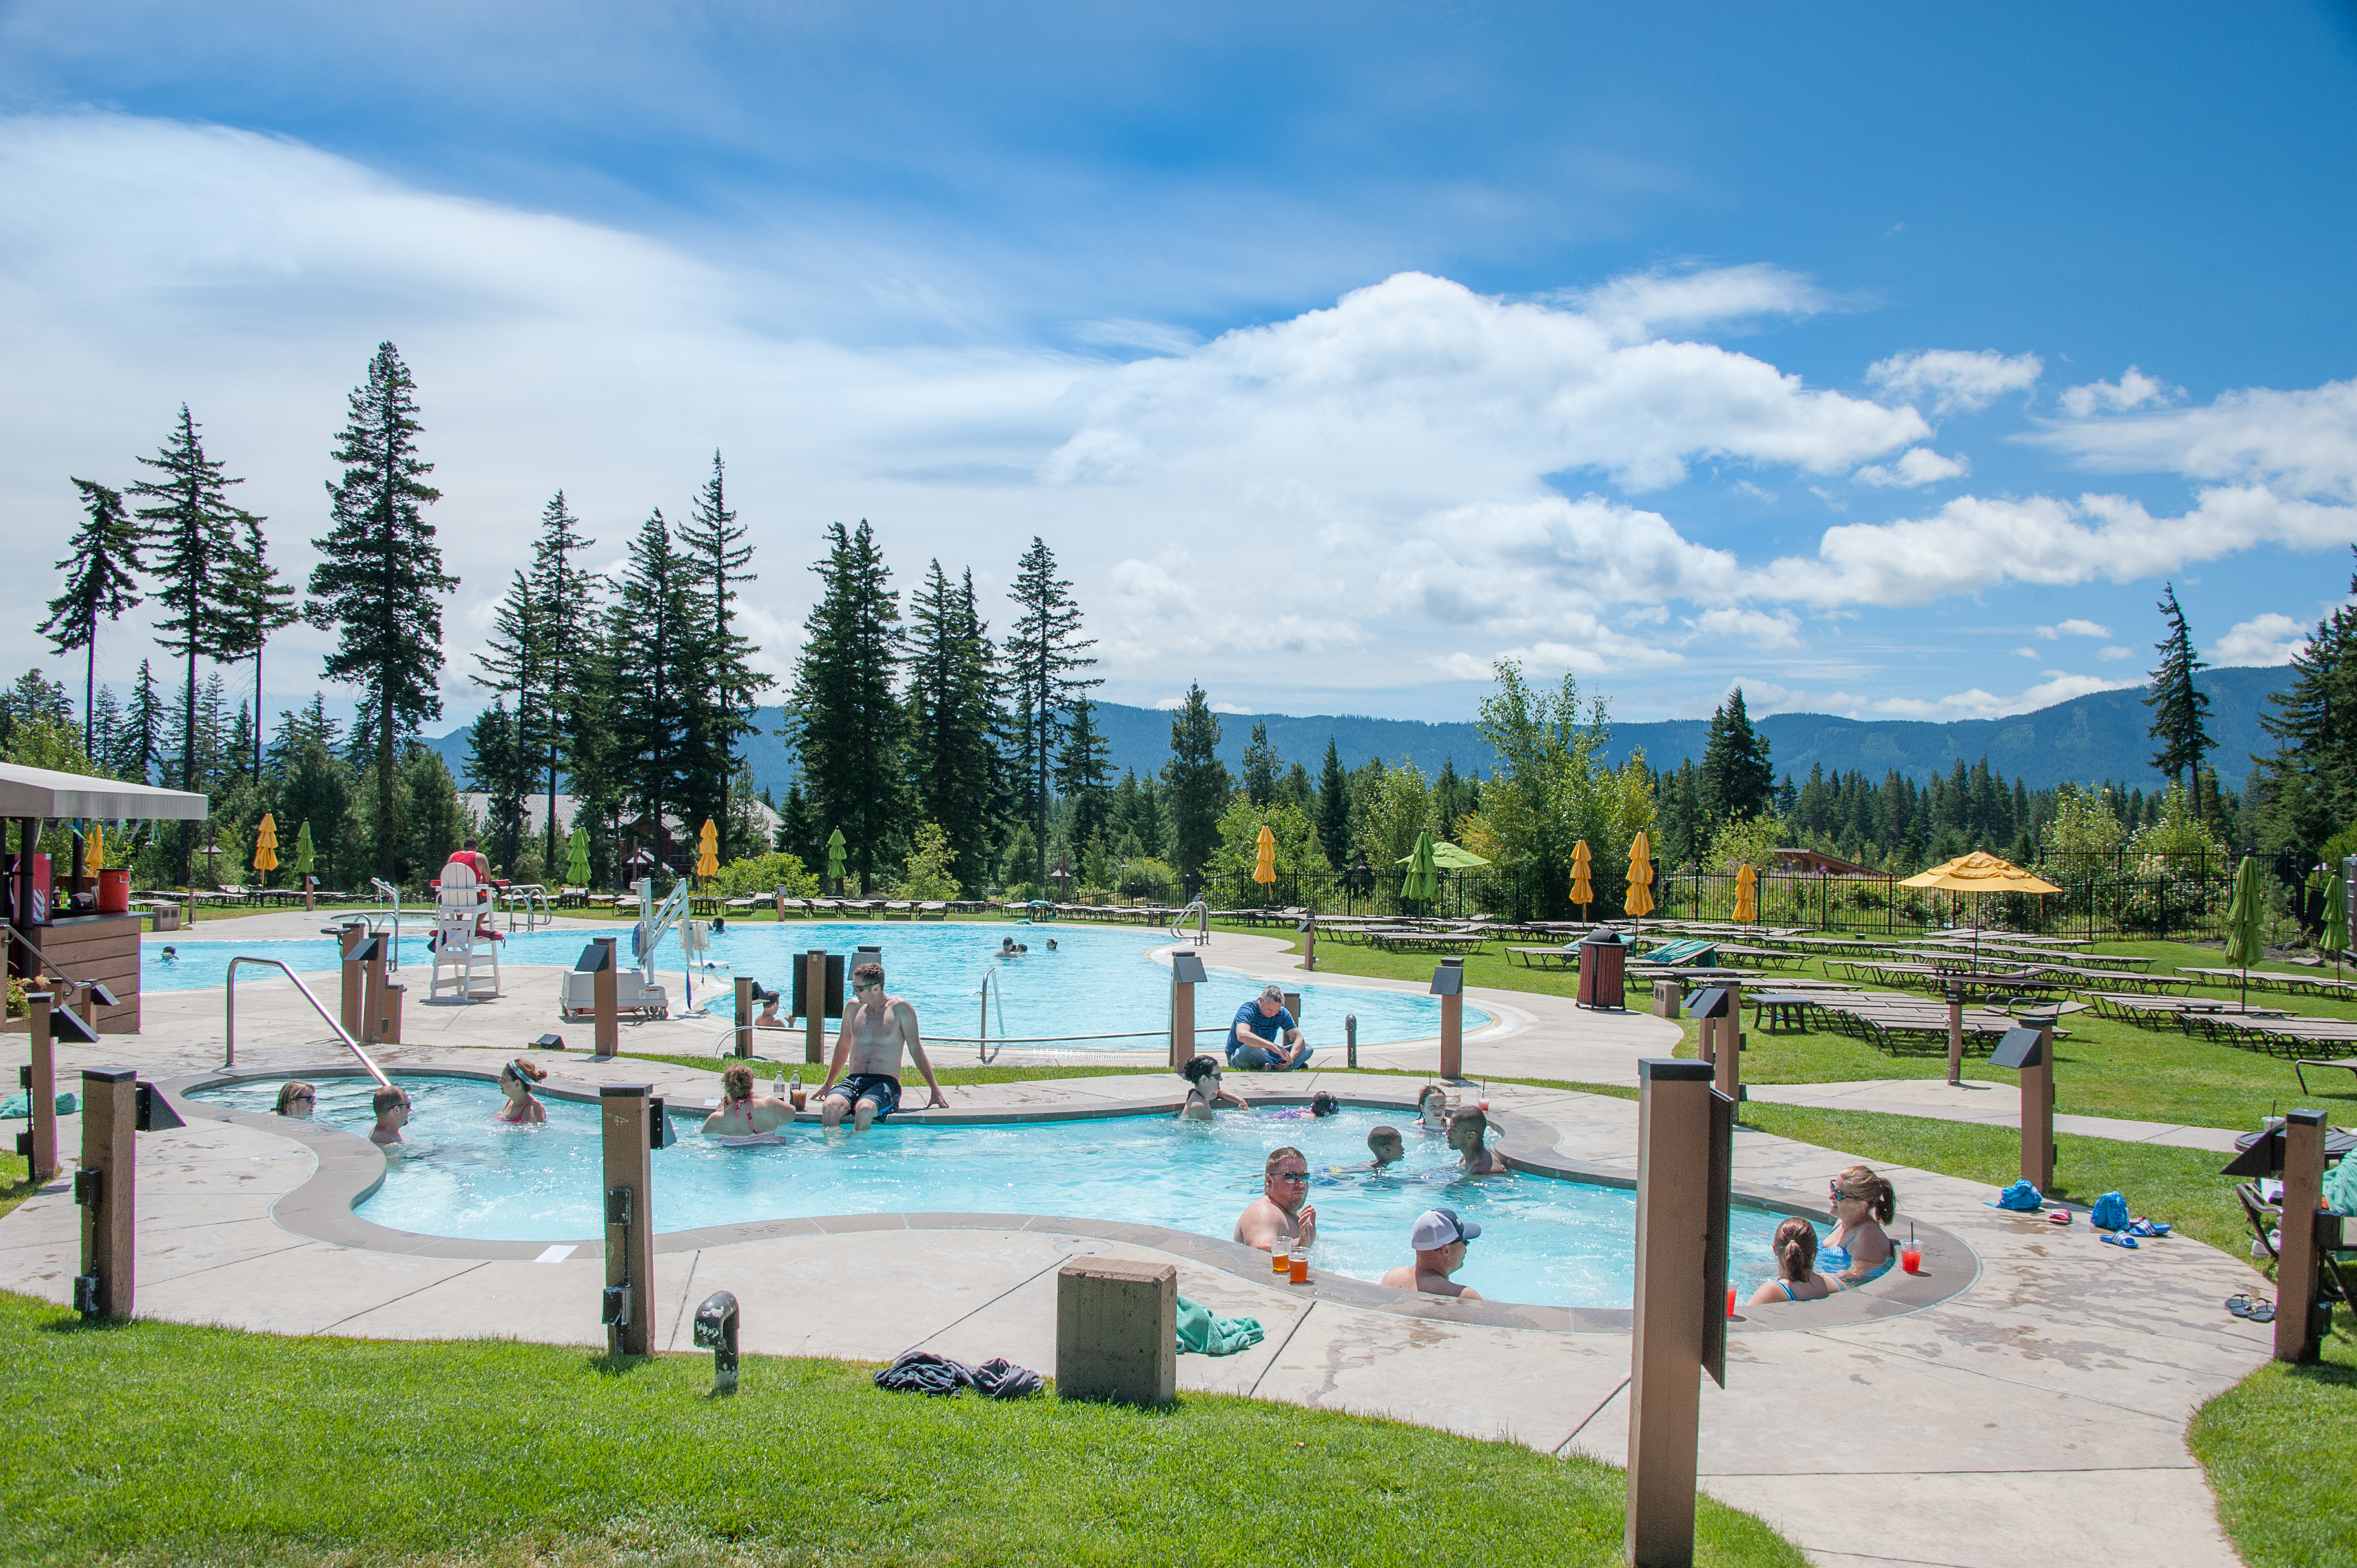 Suncadia Swim and Fitness Center is home to outdoor and indoor pools and hot tubs, two water slides, fitness equipment and a fitness class studio.